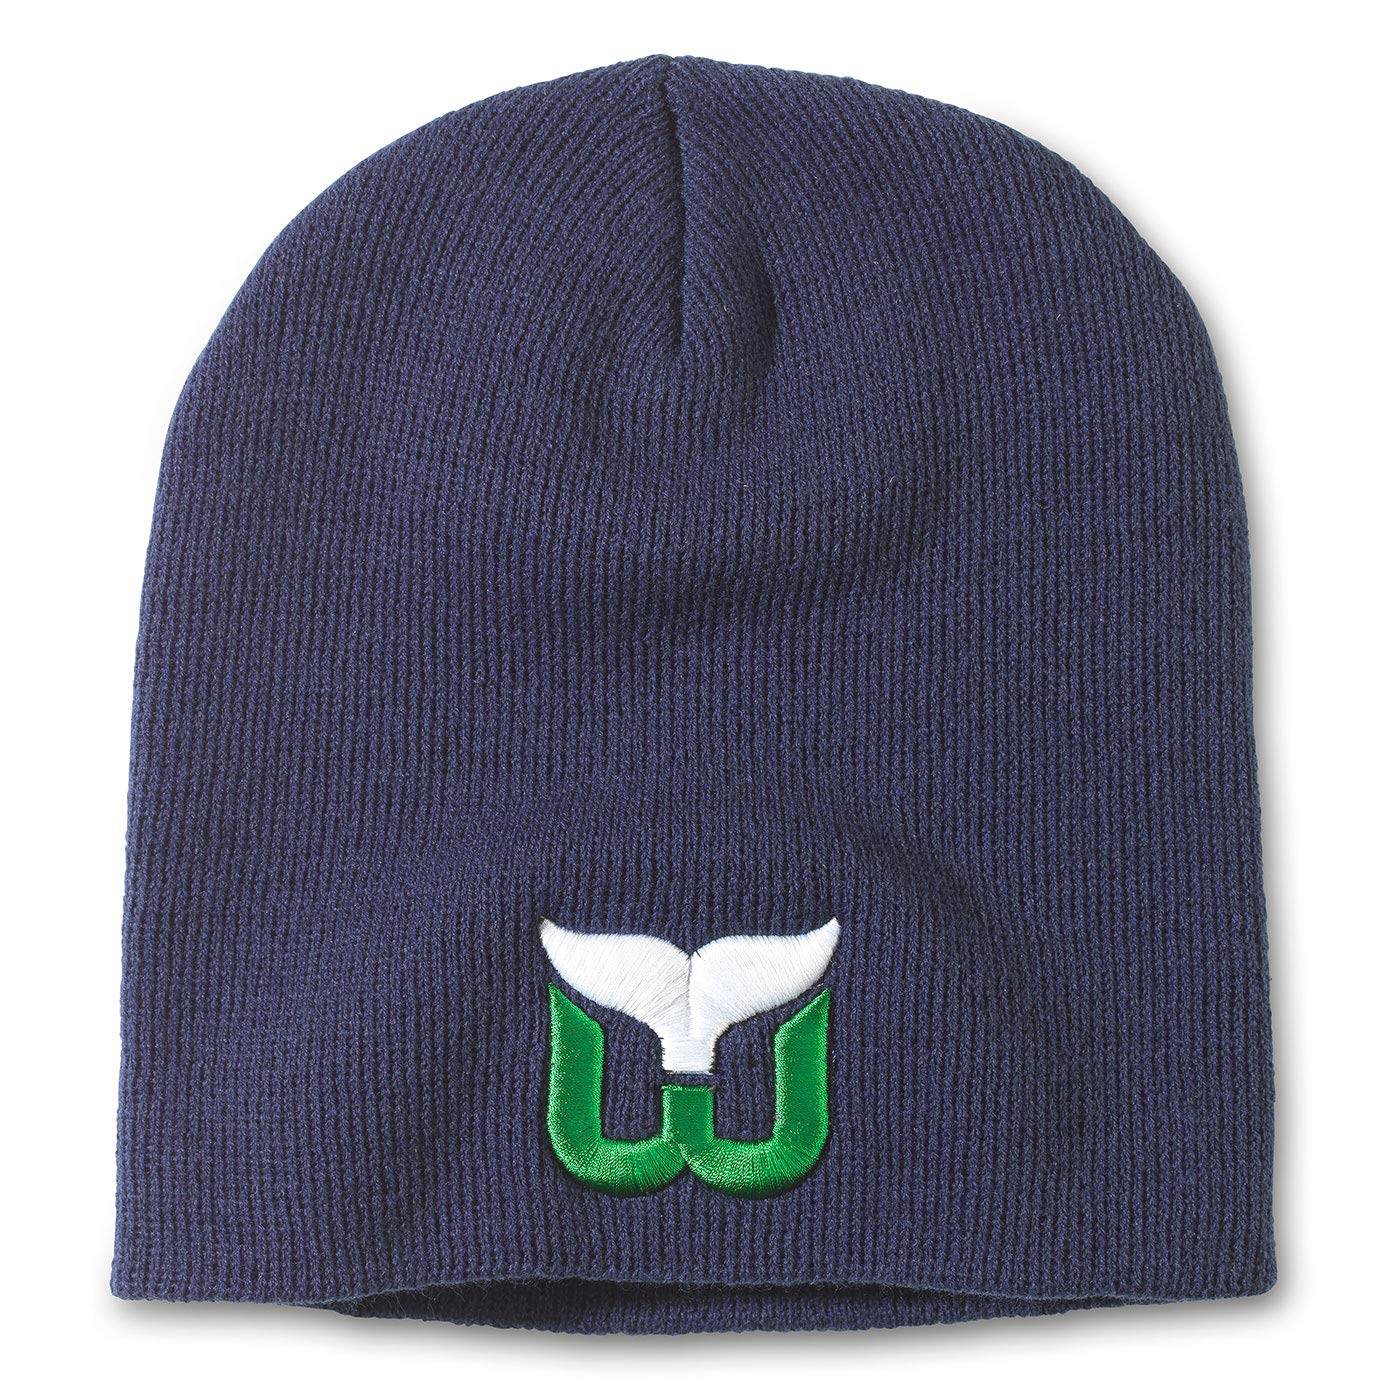 American Needle NHL Team Logo Basic Cuffless Beanie Knit Hat